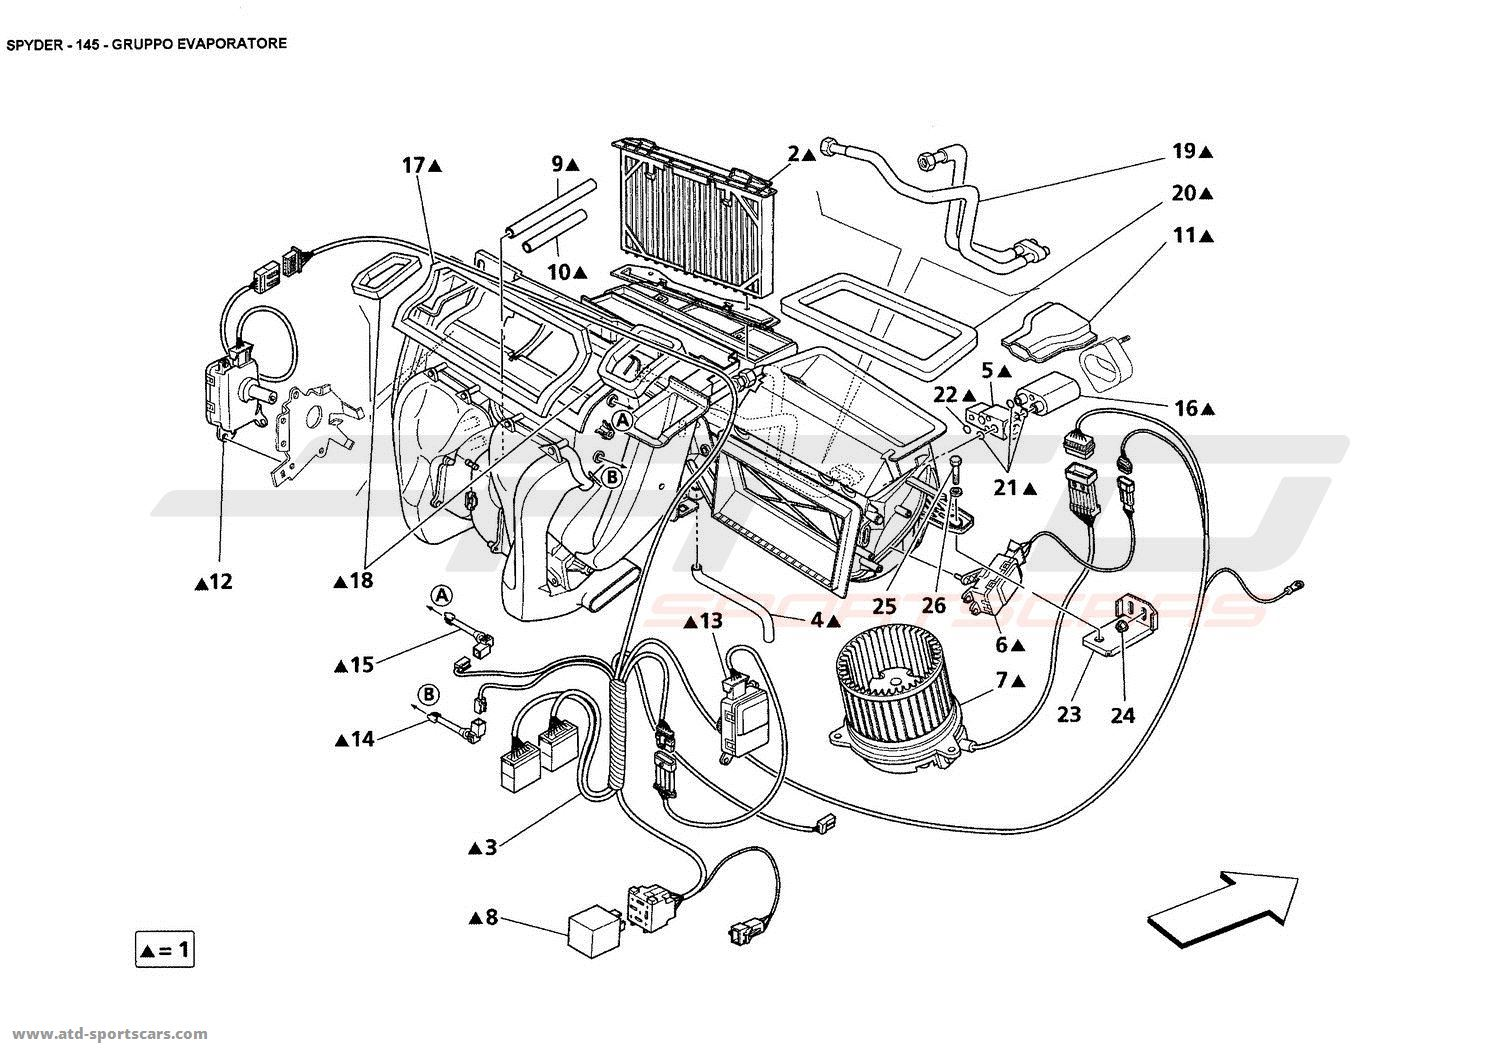 2006 Ford Explorer Timing Chain Tensioner Diagram Html on 1991 toyota corolla wiring diagram